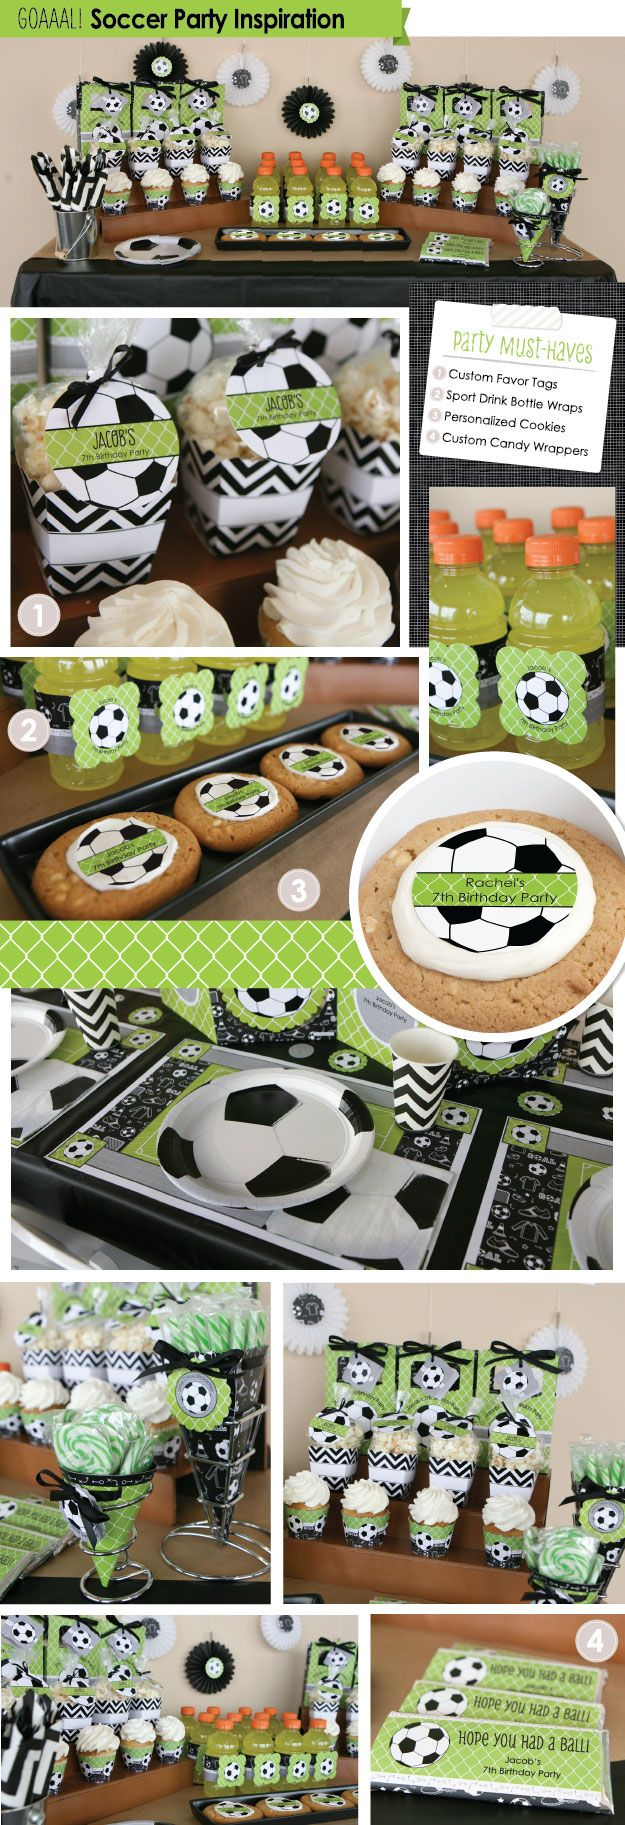 Soocer Themed Party Inspiration - Sports Party Supplies from BigDotOfHappiness.com #BigDot #HappyDot